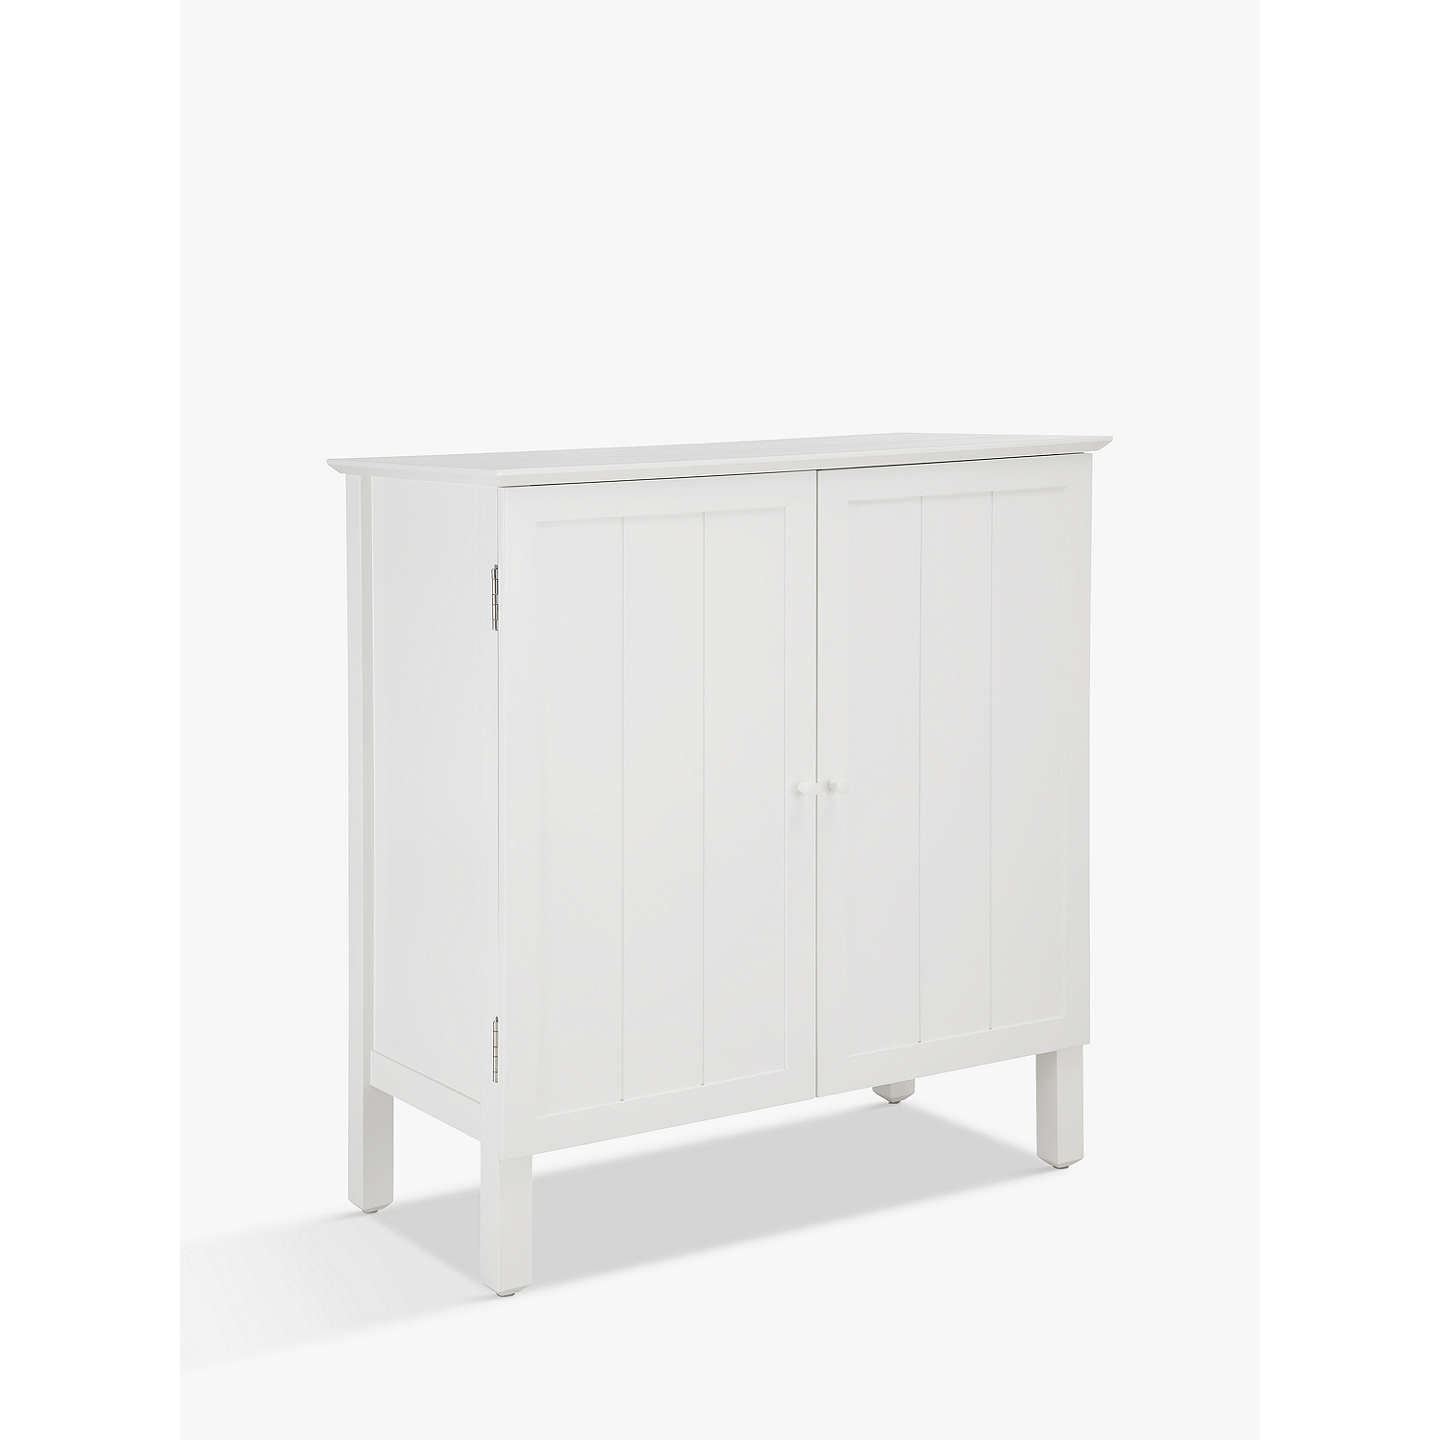 Free Standing Kitchen Cabinets John Lewis: John Lewis St Ives Double Towel Cupboard At John Lewis